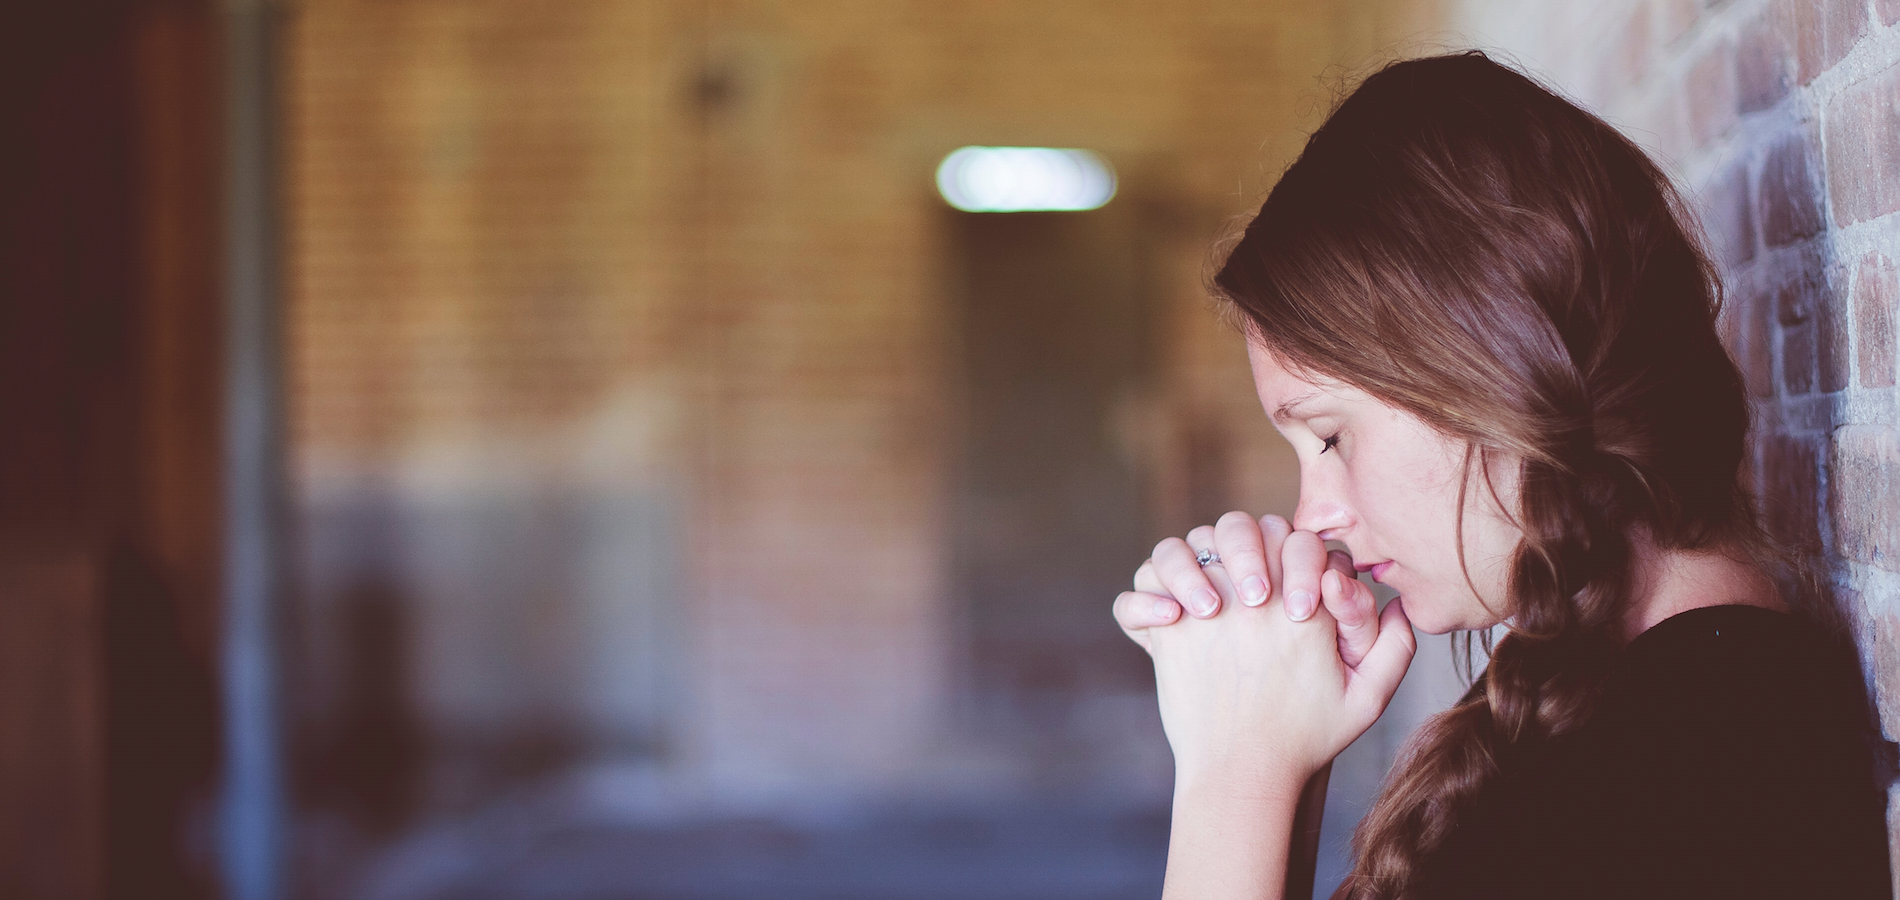 How Do I Have a Relationship With God When I'm Supposed to Fear Him?